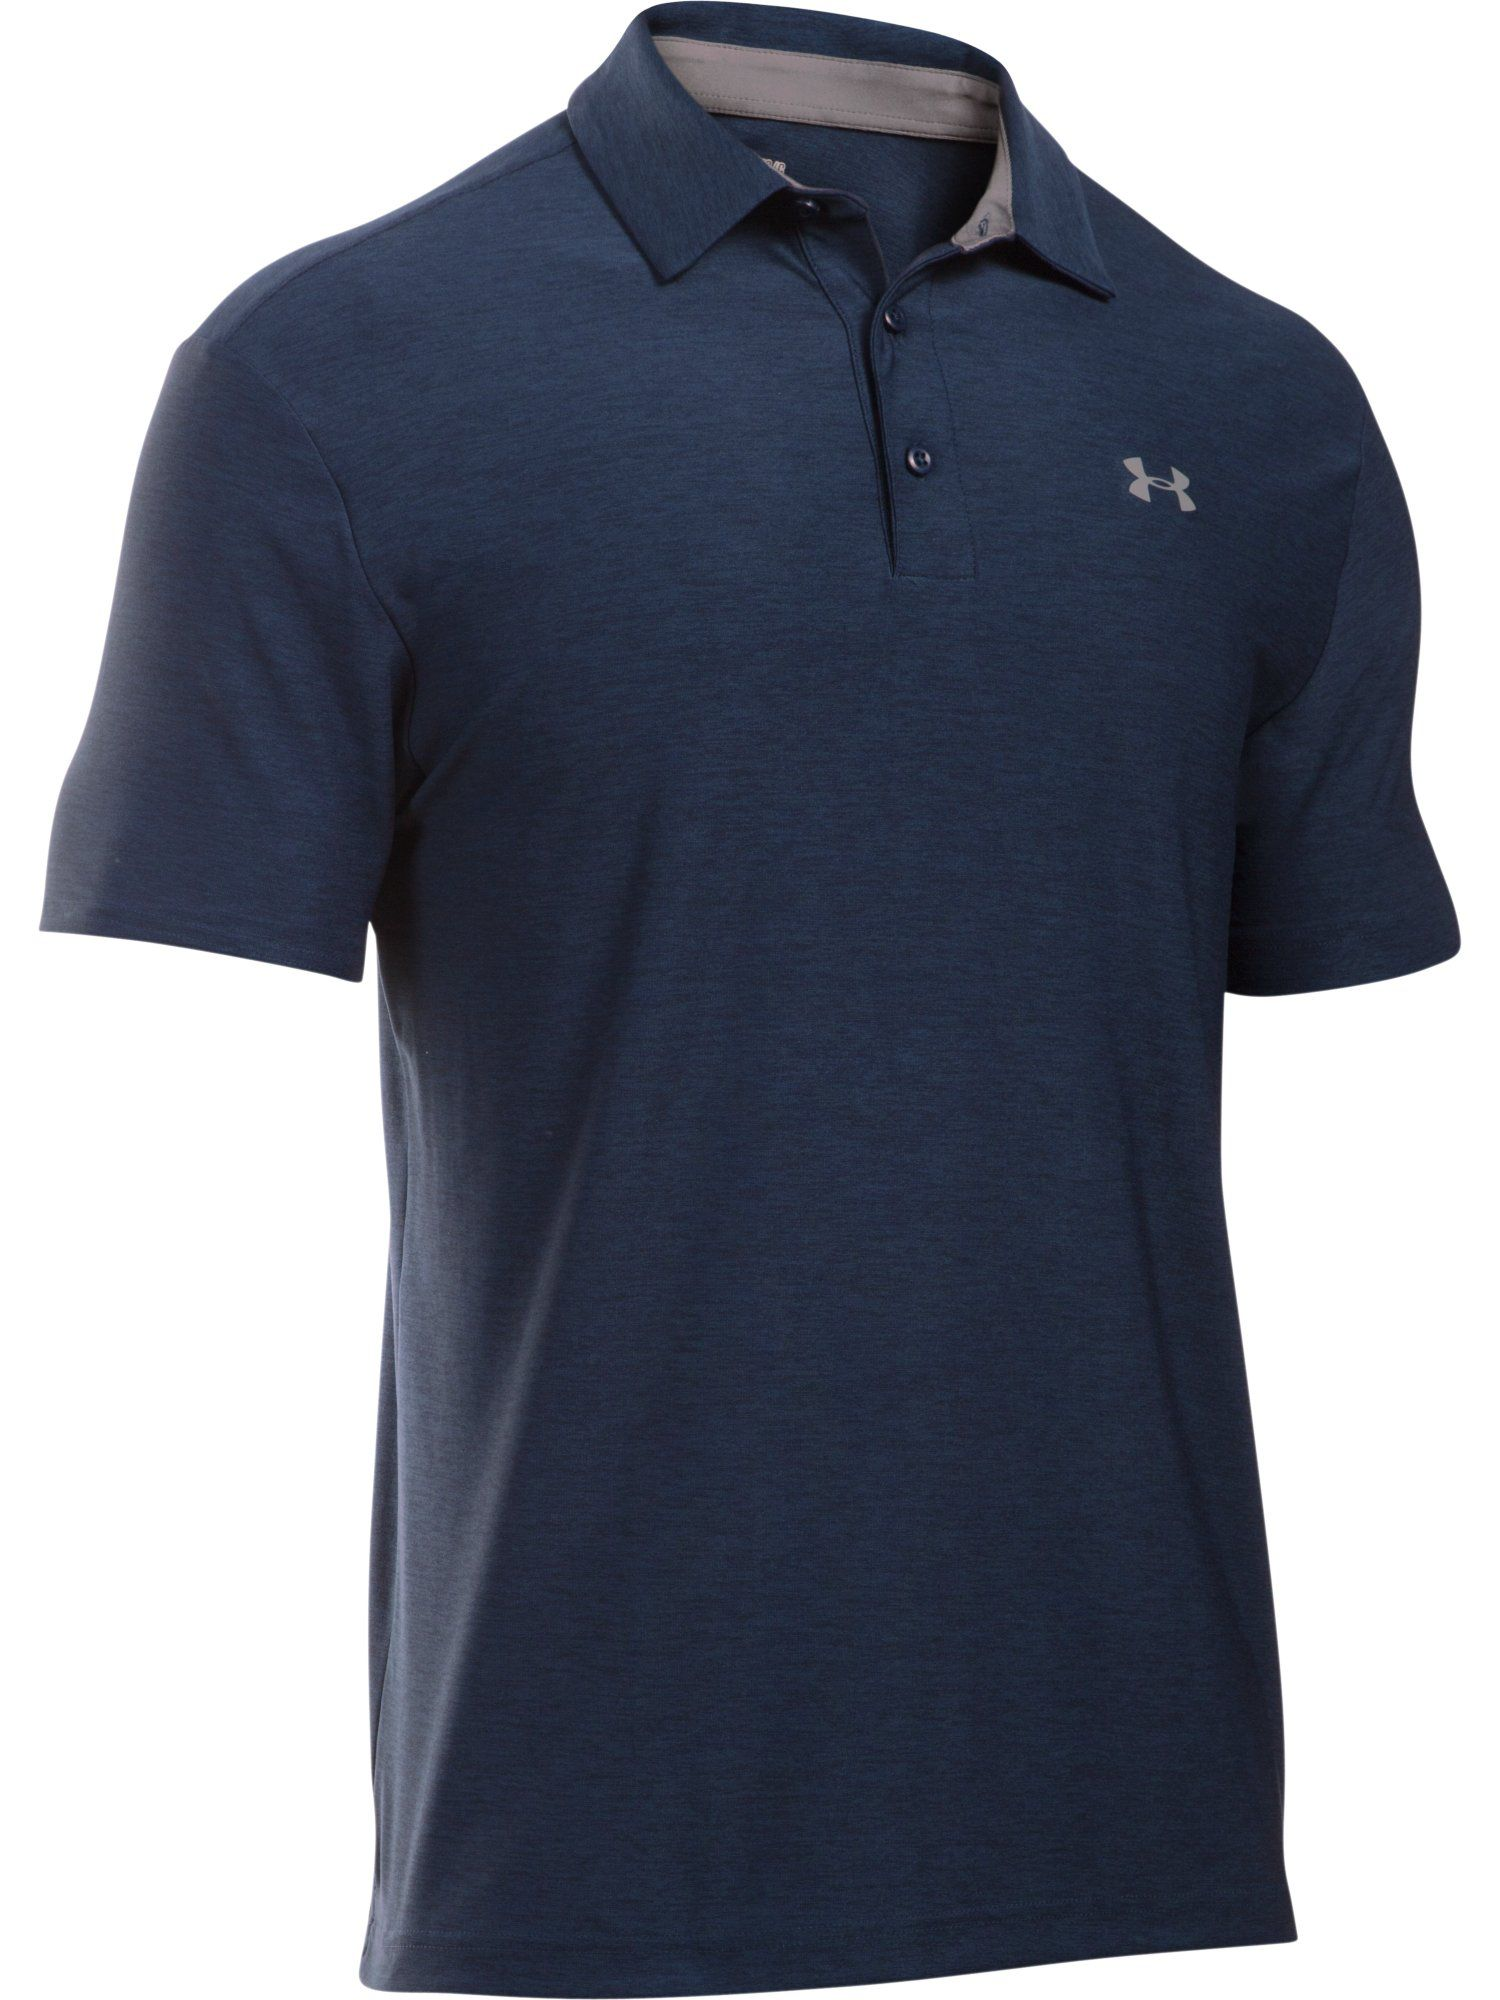 Men's Under Armour Playoff Polo Shirt, Dark Blue